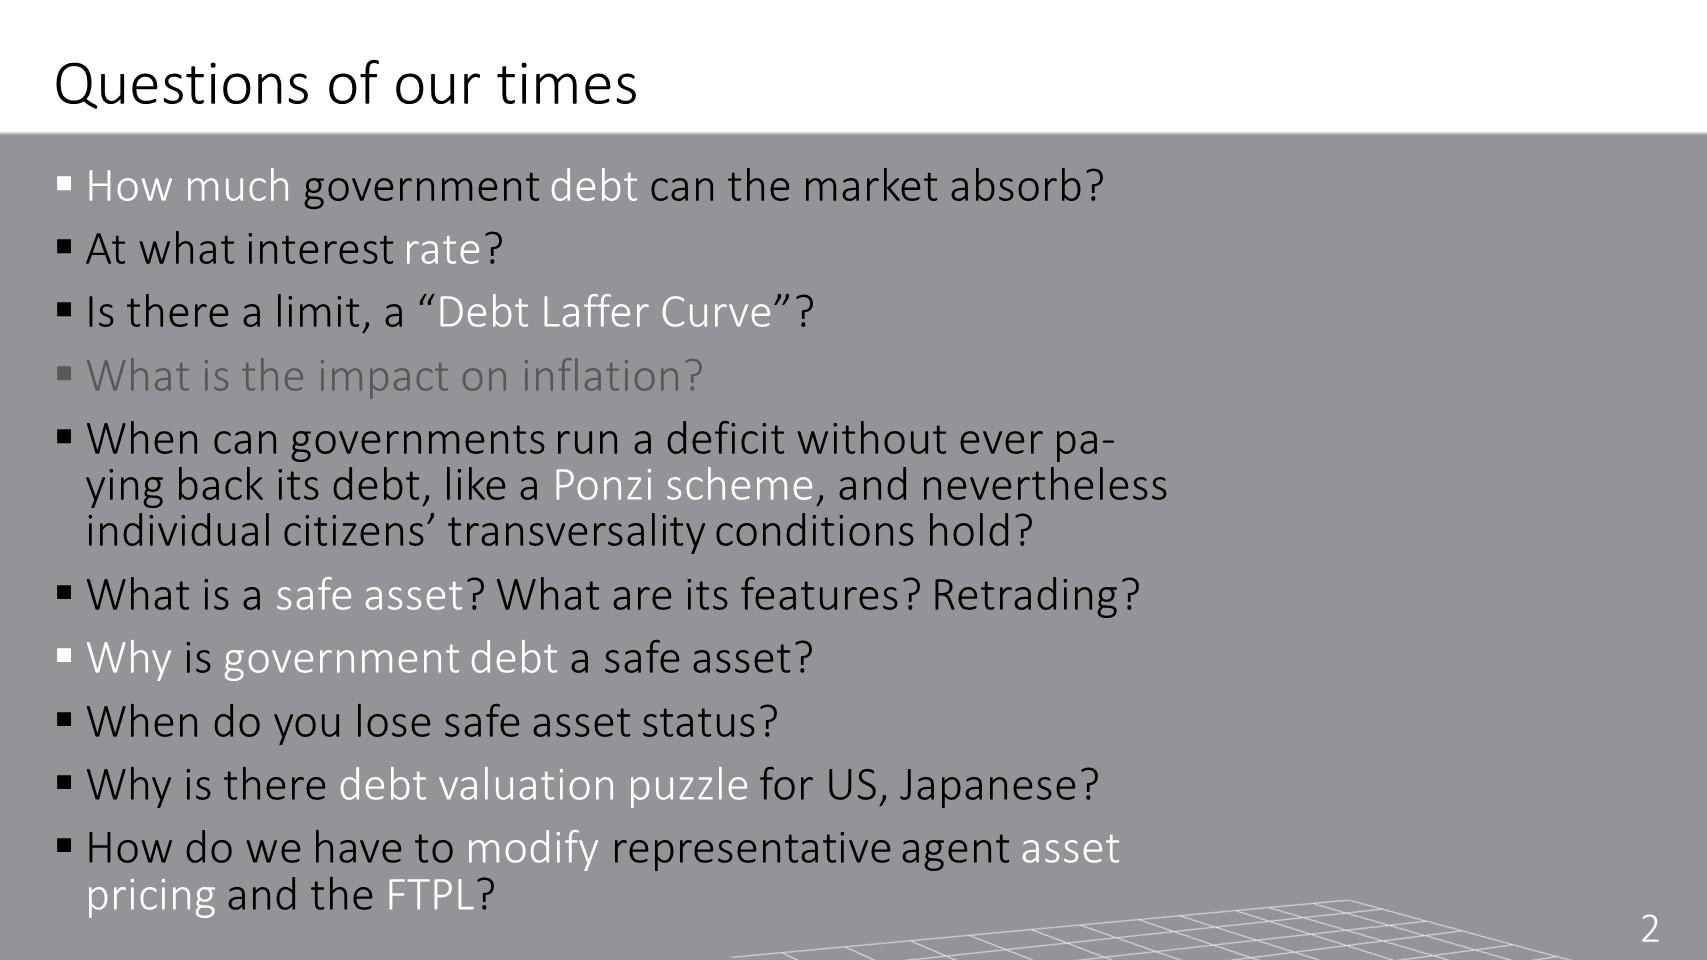 Debt as Safe Asset